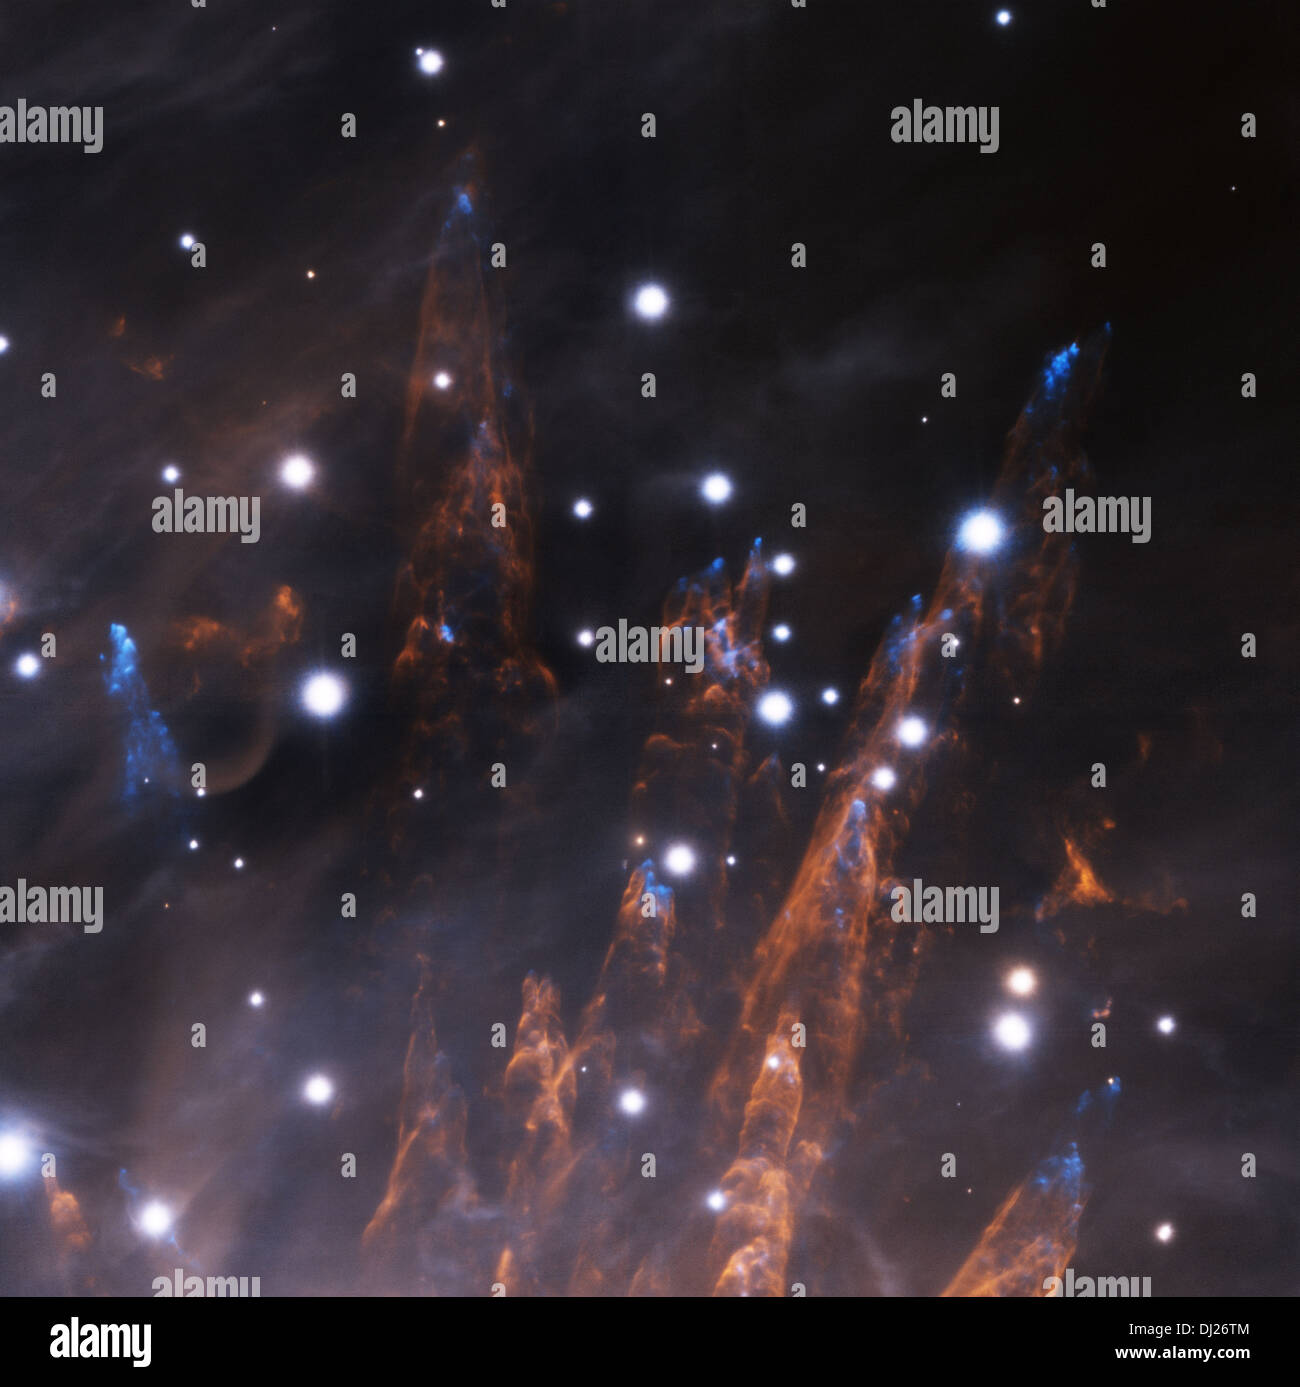 Cosmic bullets pierce the outskirts of the Orion Nebula some 1500 light-years distant in this sharp infrared close-up. - Stock Image